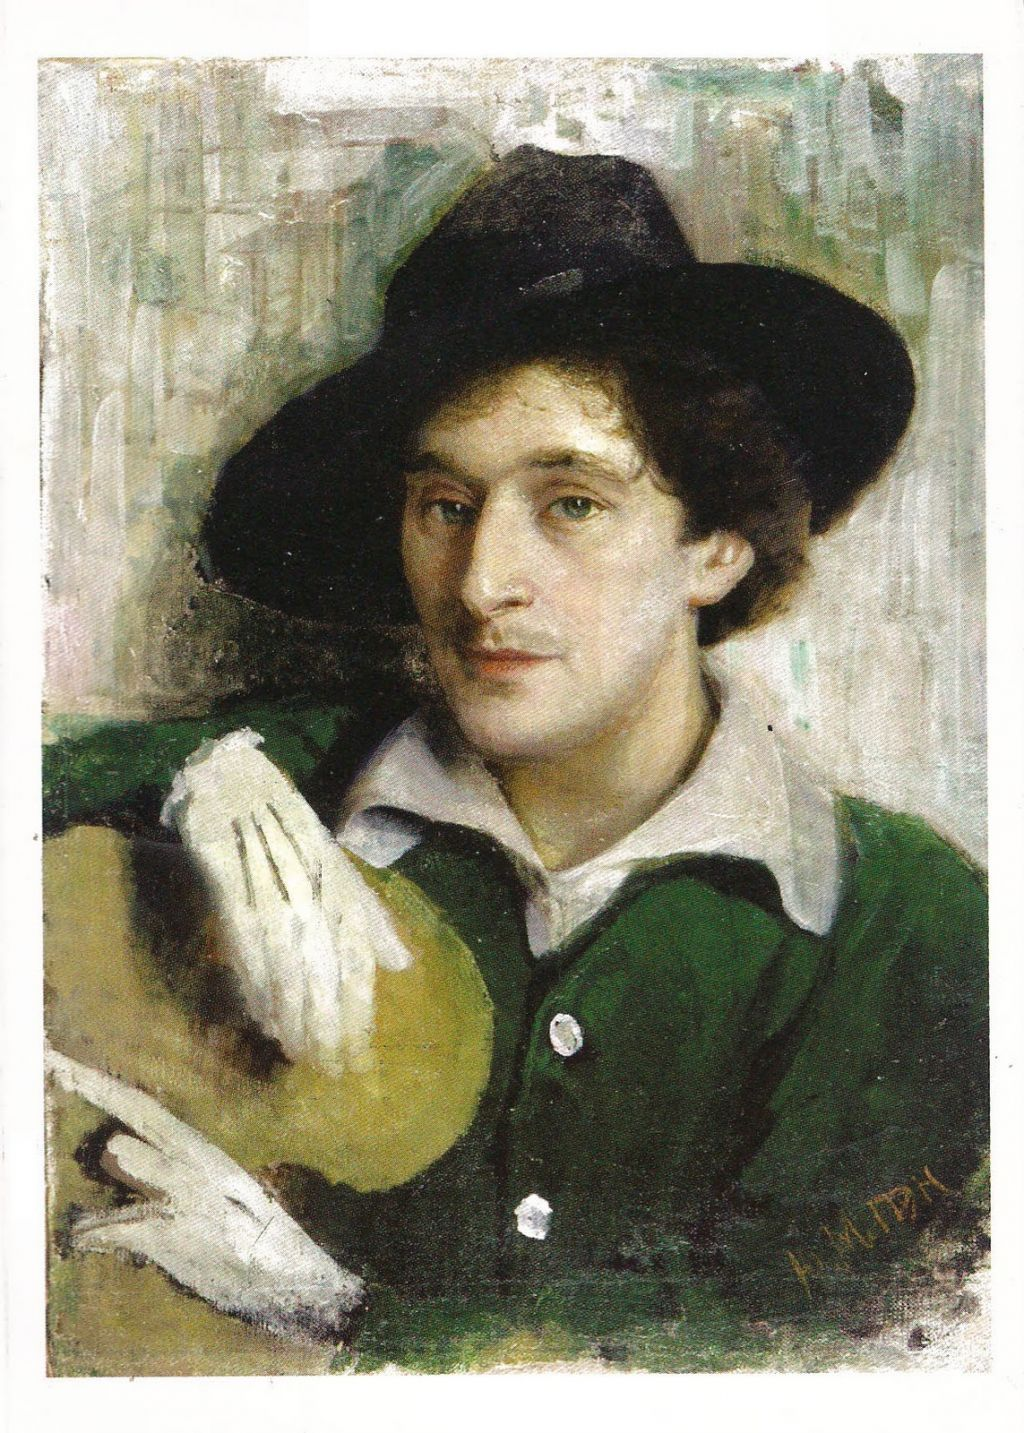 chagall essay marc Franz marc essay franz marc essay  marc chagall essay 1399 words | 6 pages marc chagall marc chagall as an artist and as a person cannot be categorized.